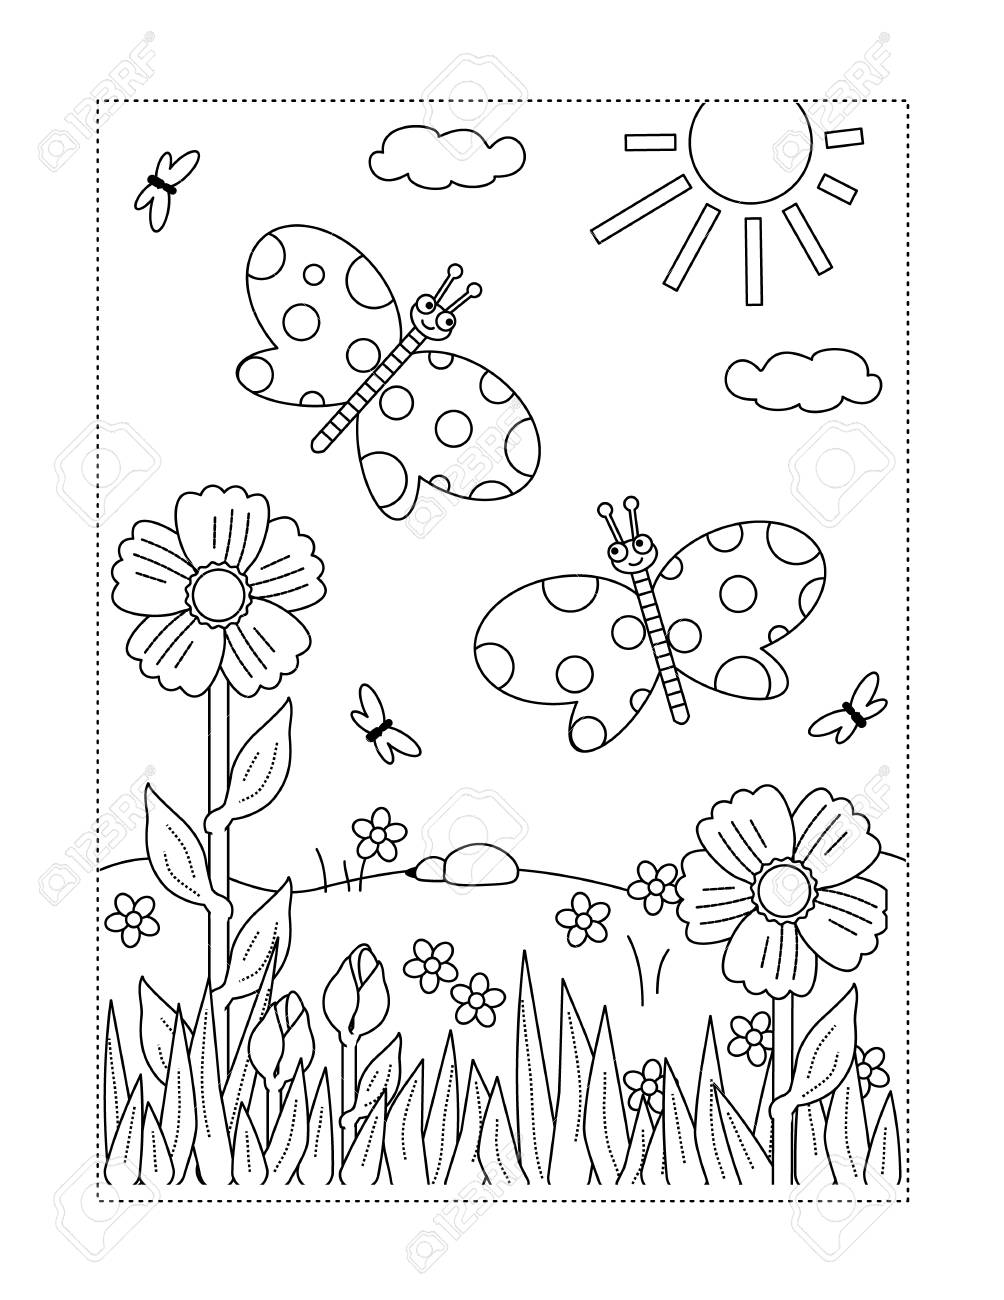 Spring or summer joy themed coloring page with butterflies, flowers,..